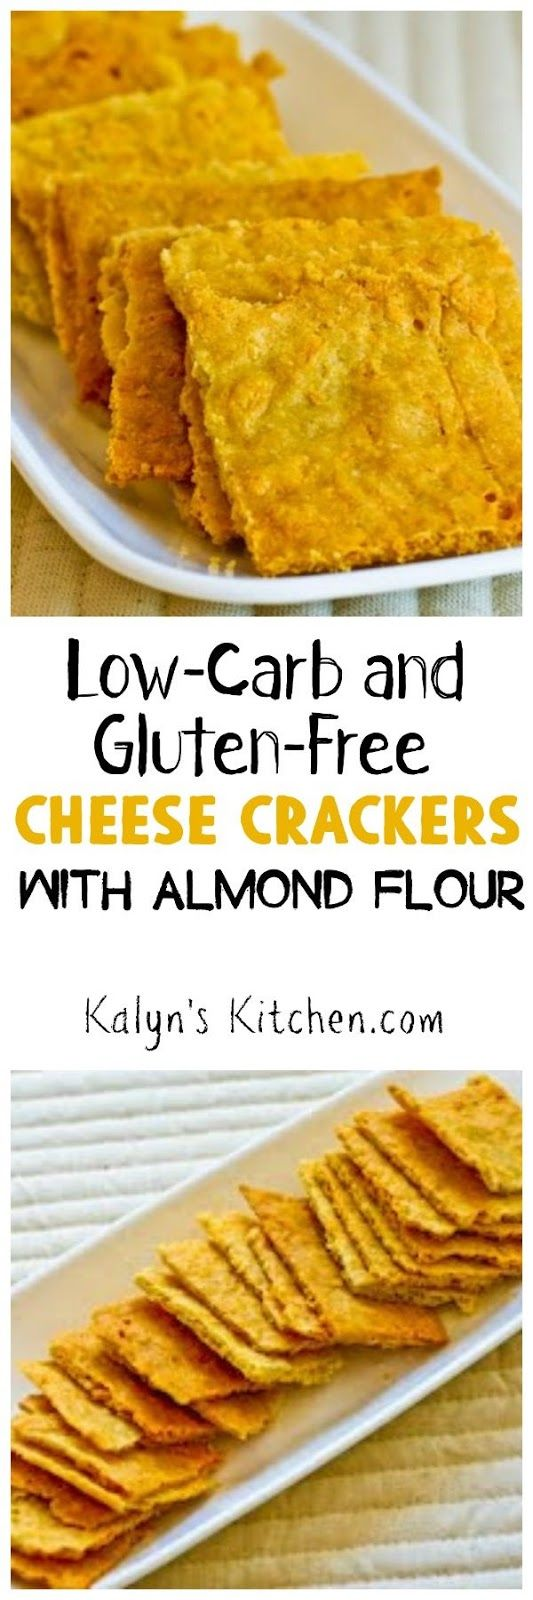 recipe: coconut and almond flour crackers [36]